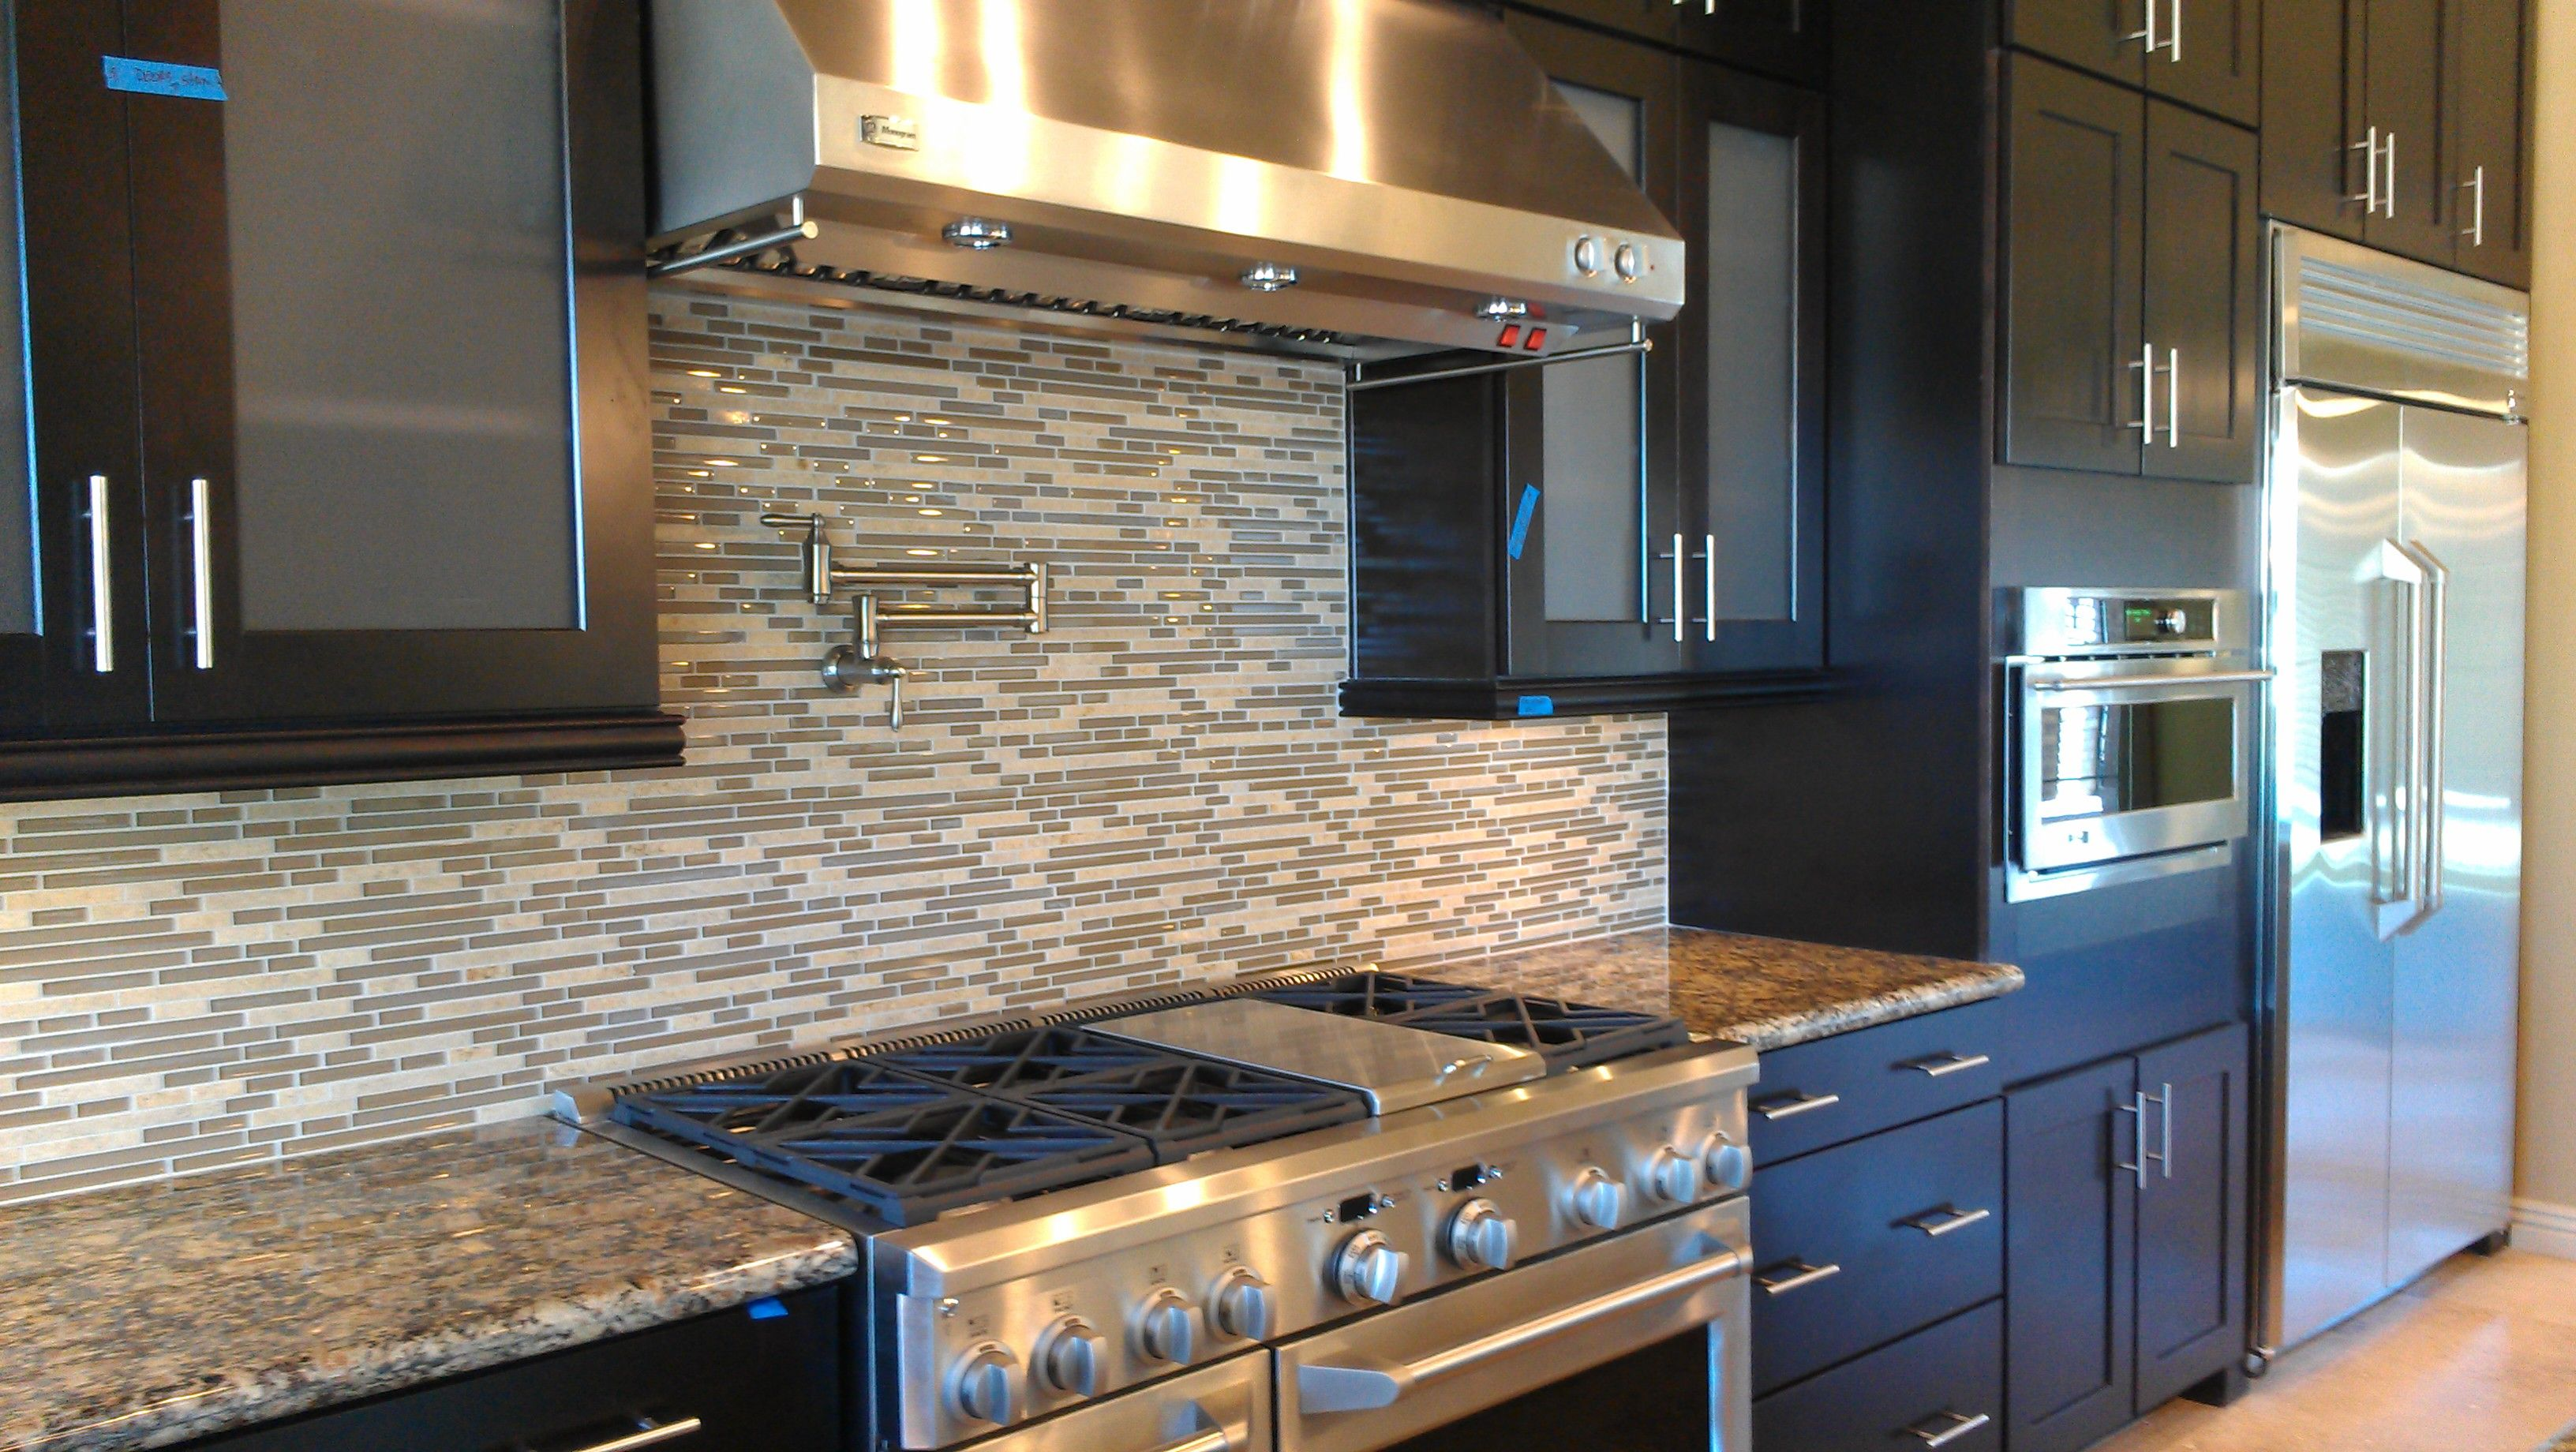 Commercial grade kitchen appliances a country kitchen - Commercial kitchen appliance ...